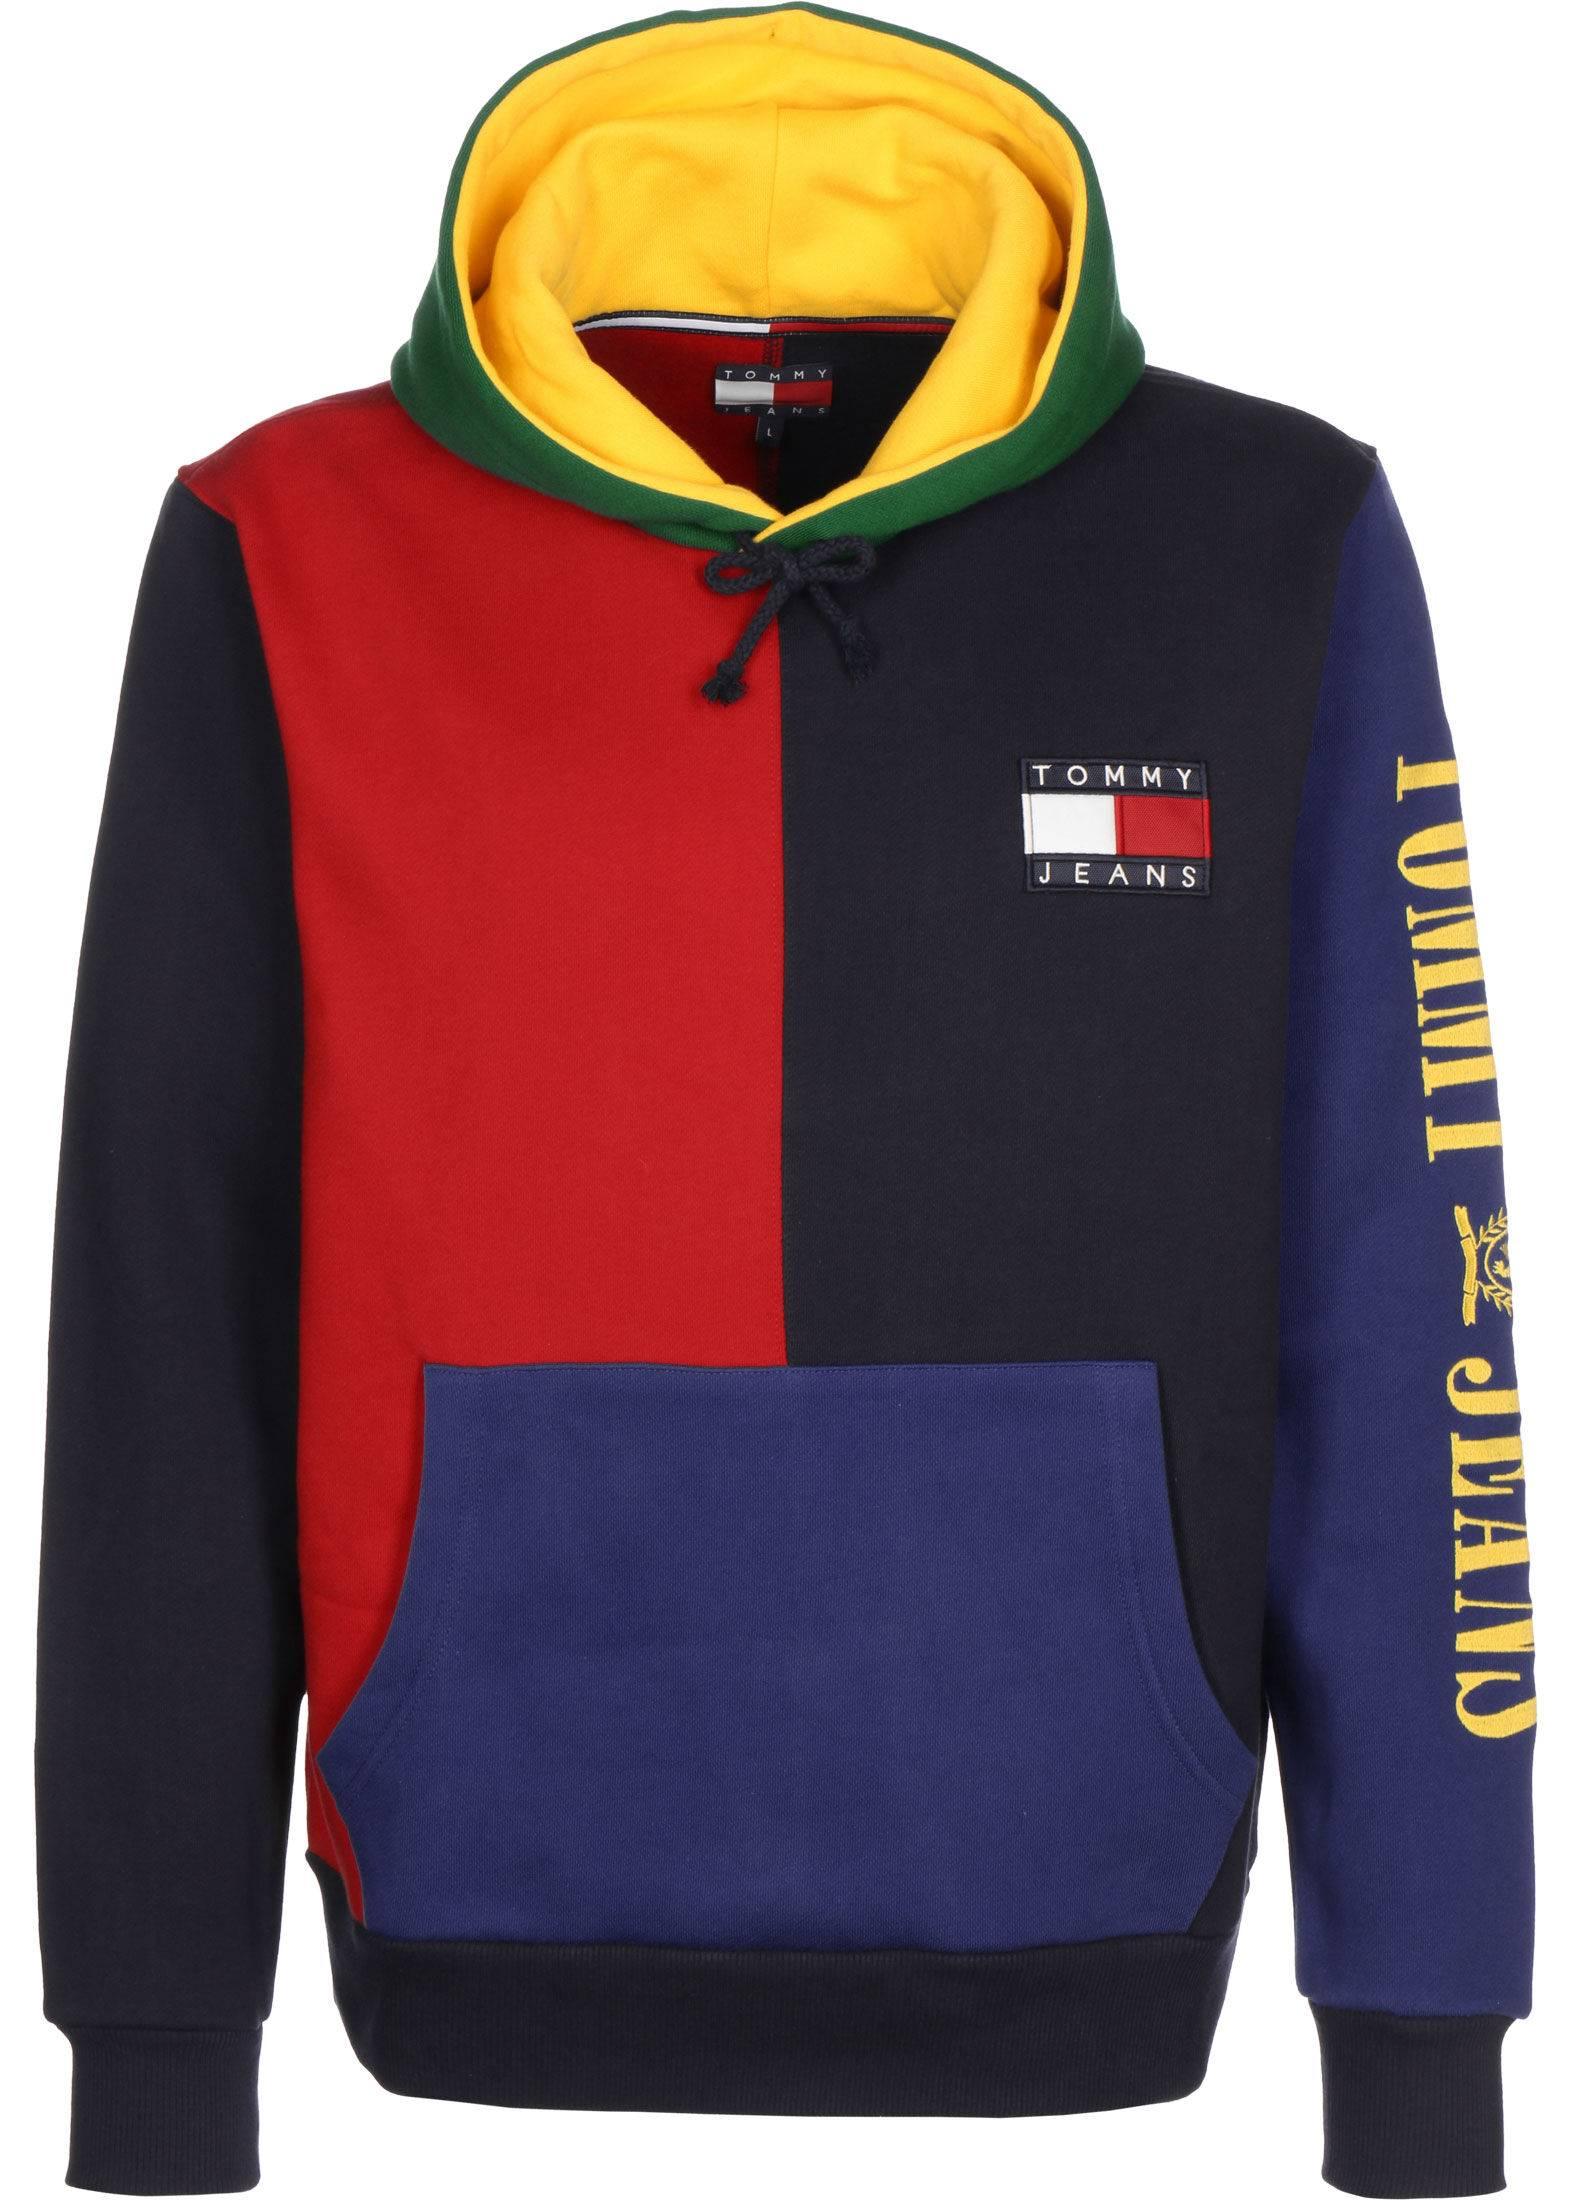 Tommy Jeans 90s, taille S, homme, multi-couleur